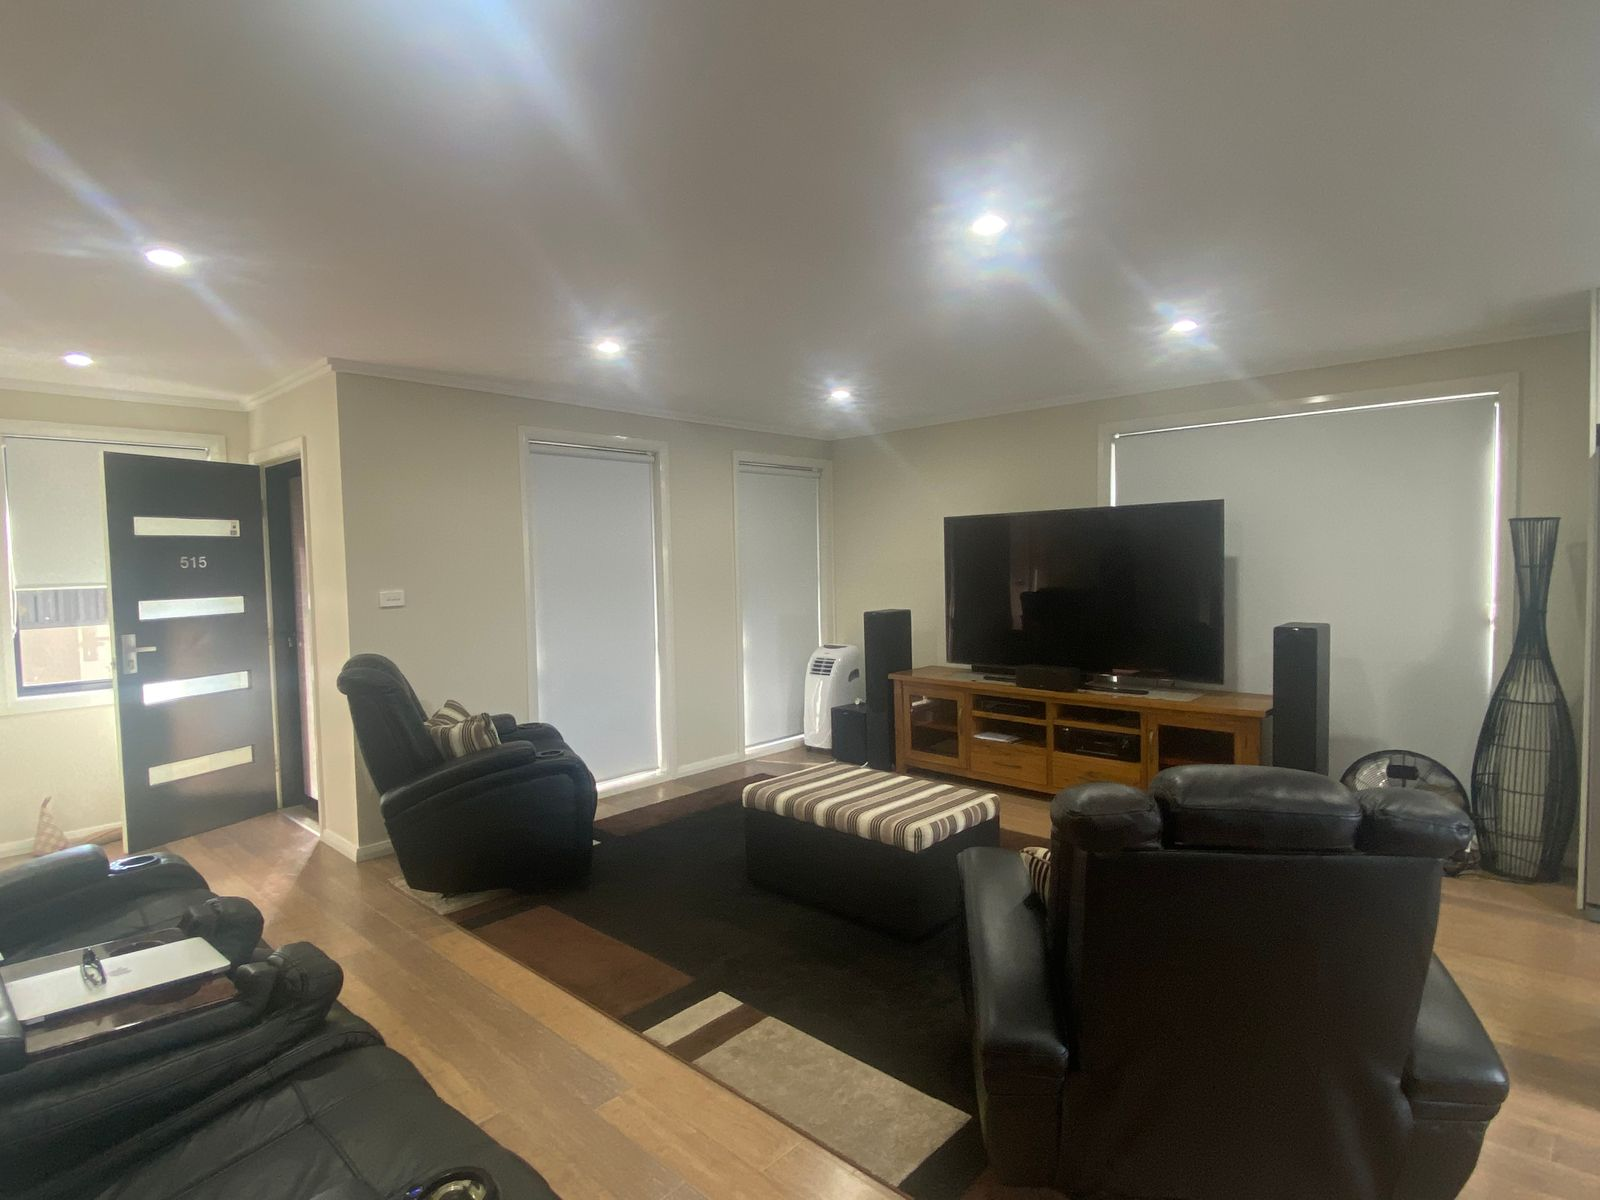 515 Londonderry Rd, Londonderry, NSW 2753